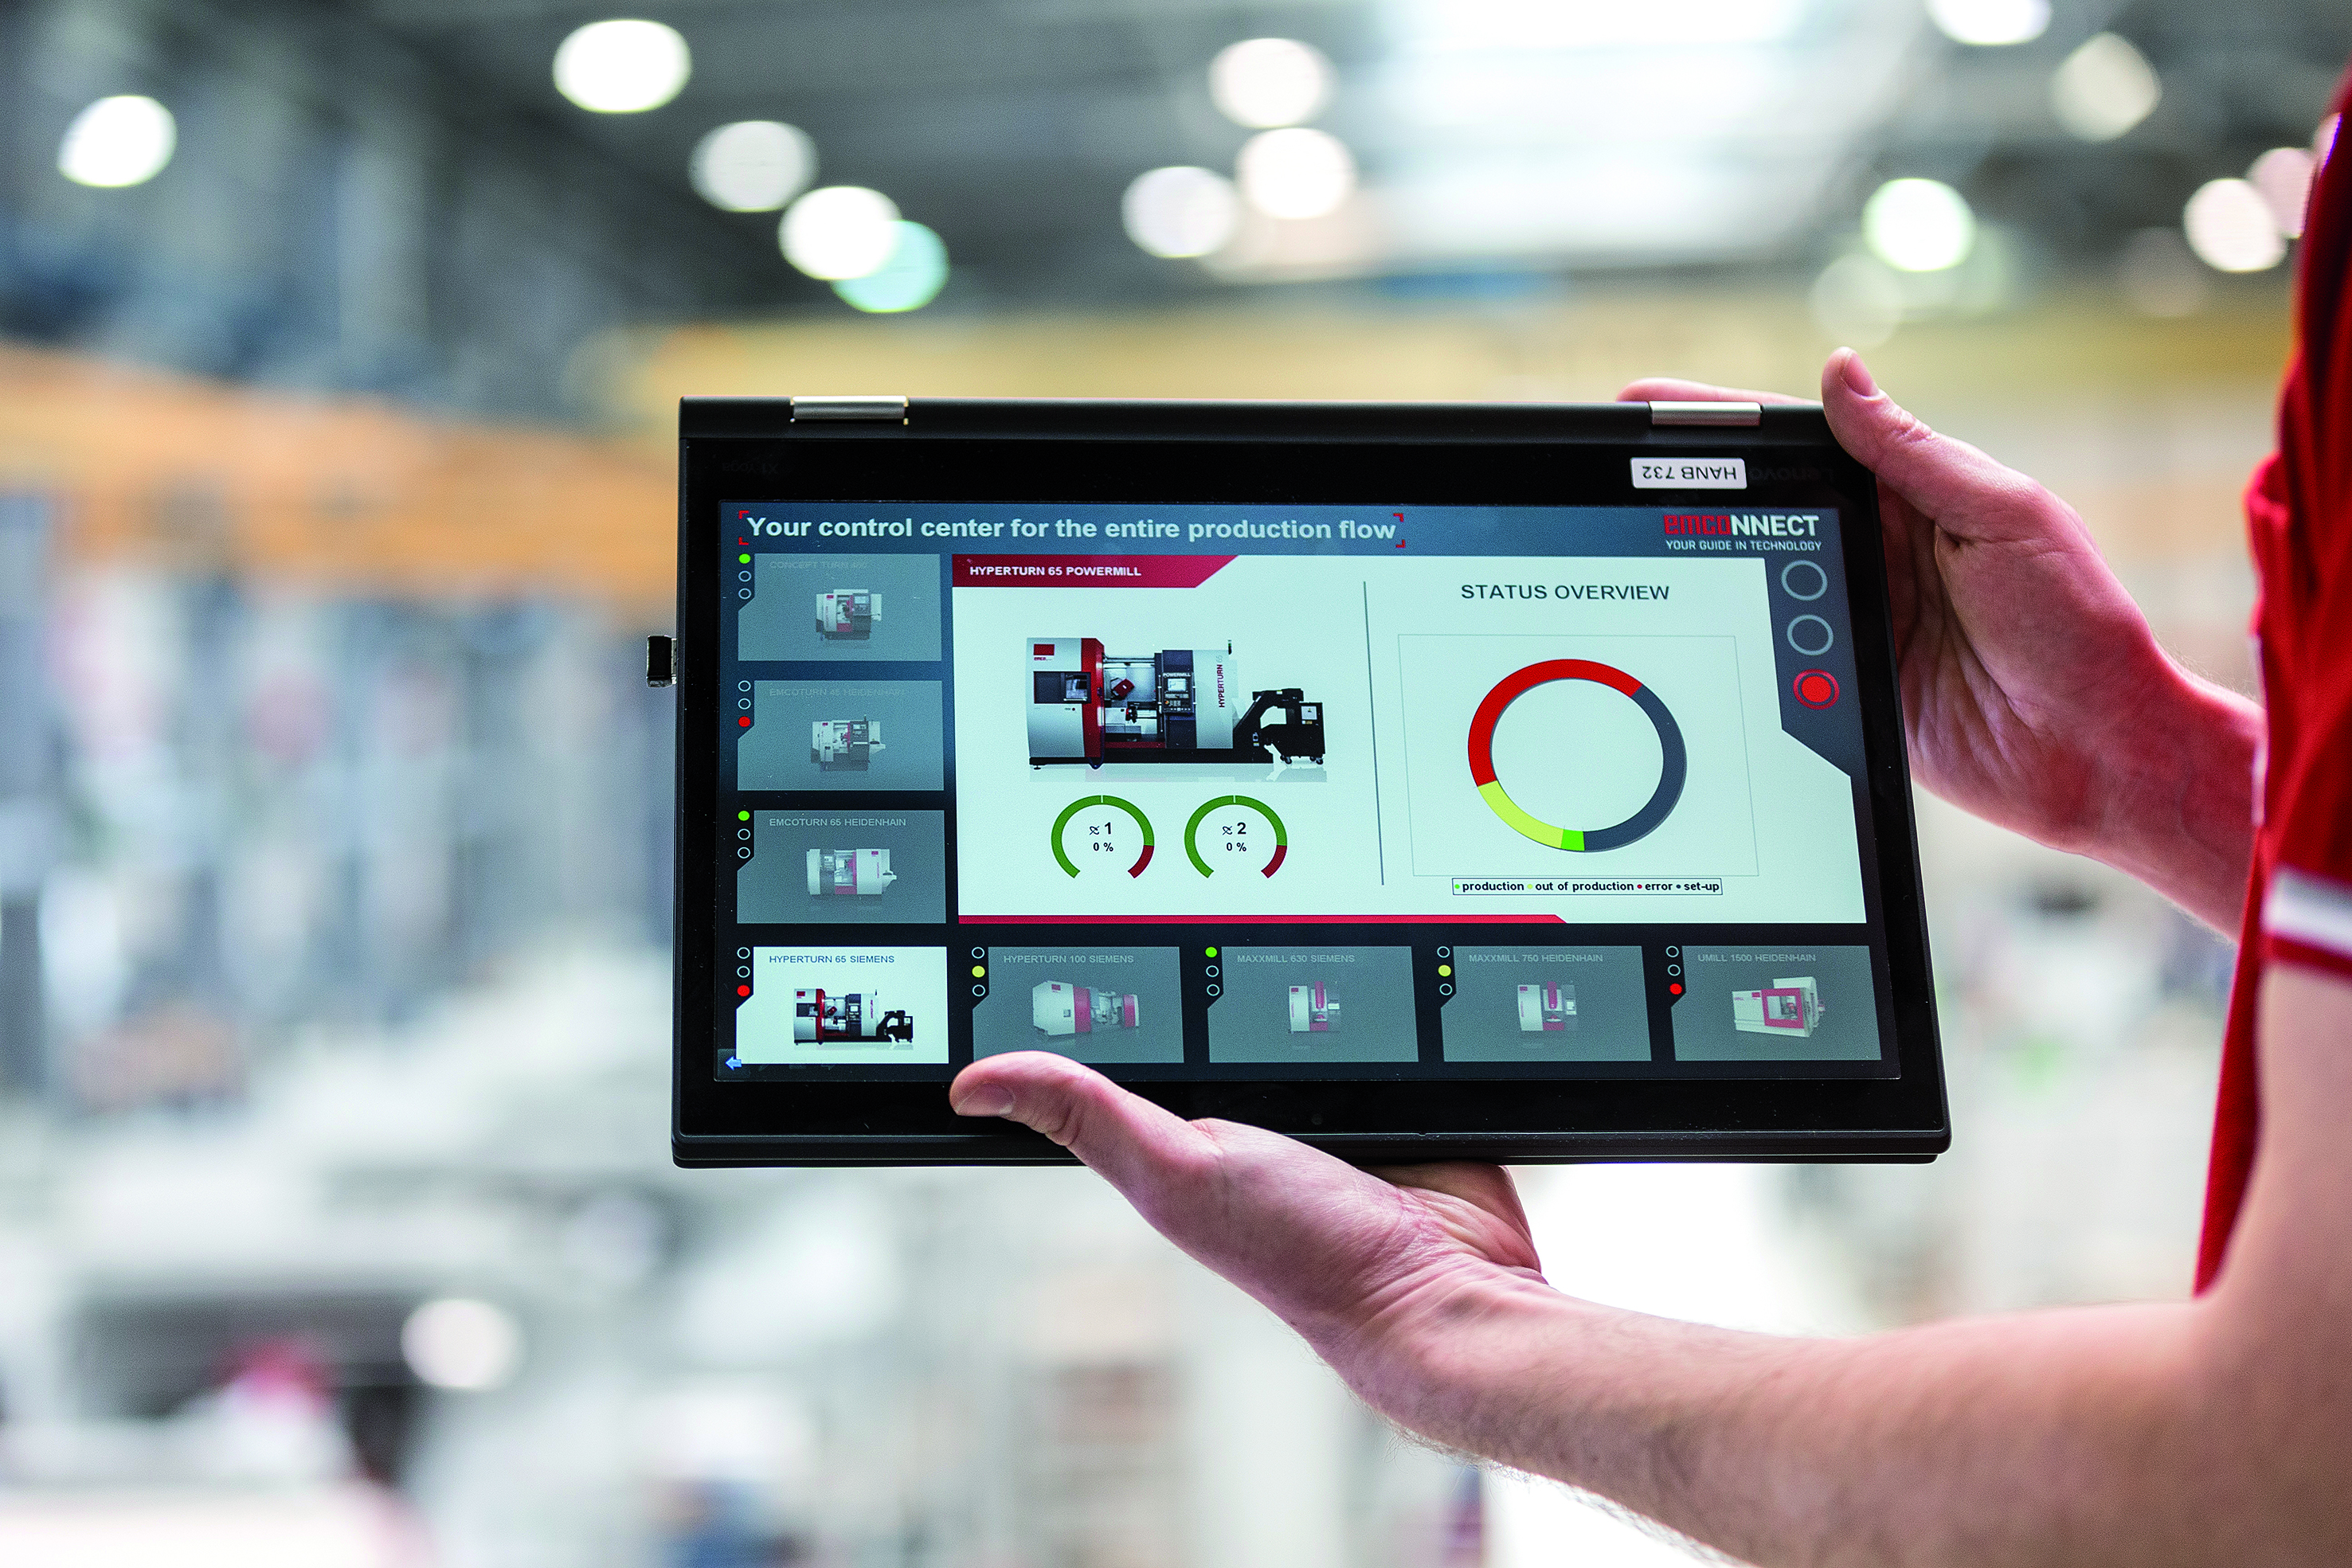 Focus on Automation: METAV digital showcasing automation solutions for efficient metalworking